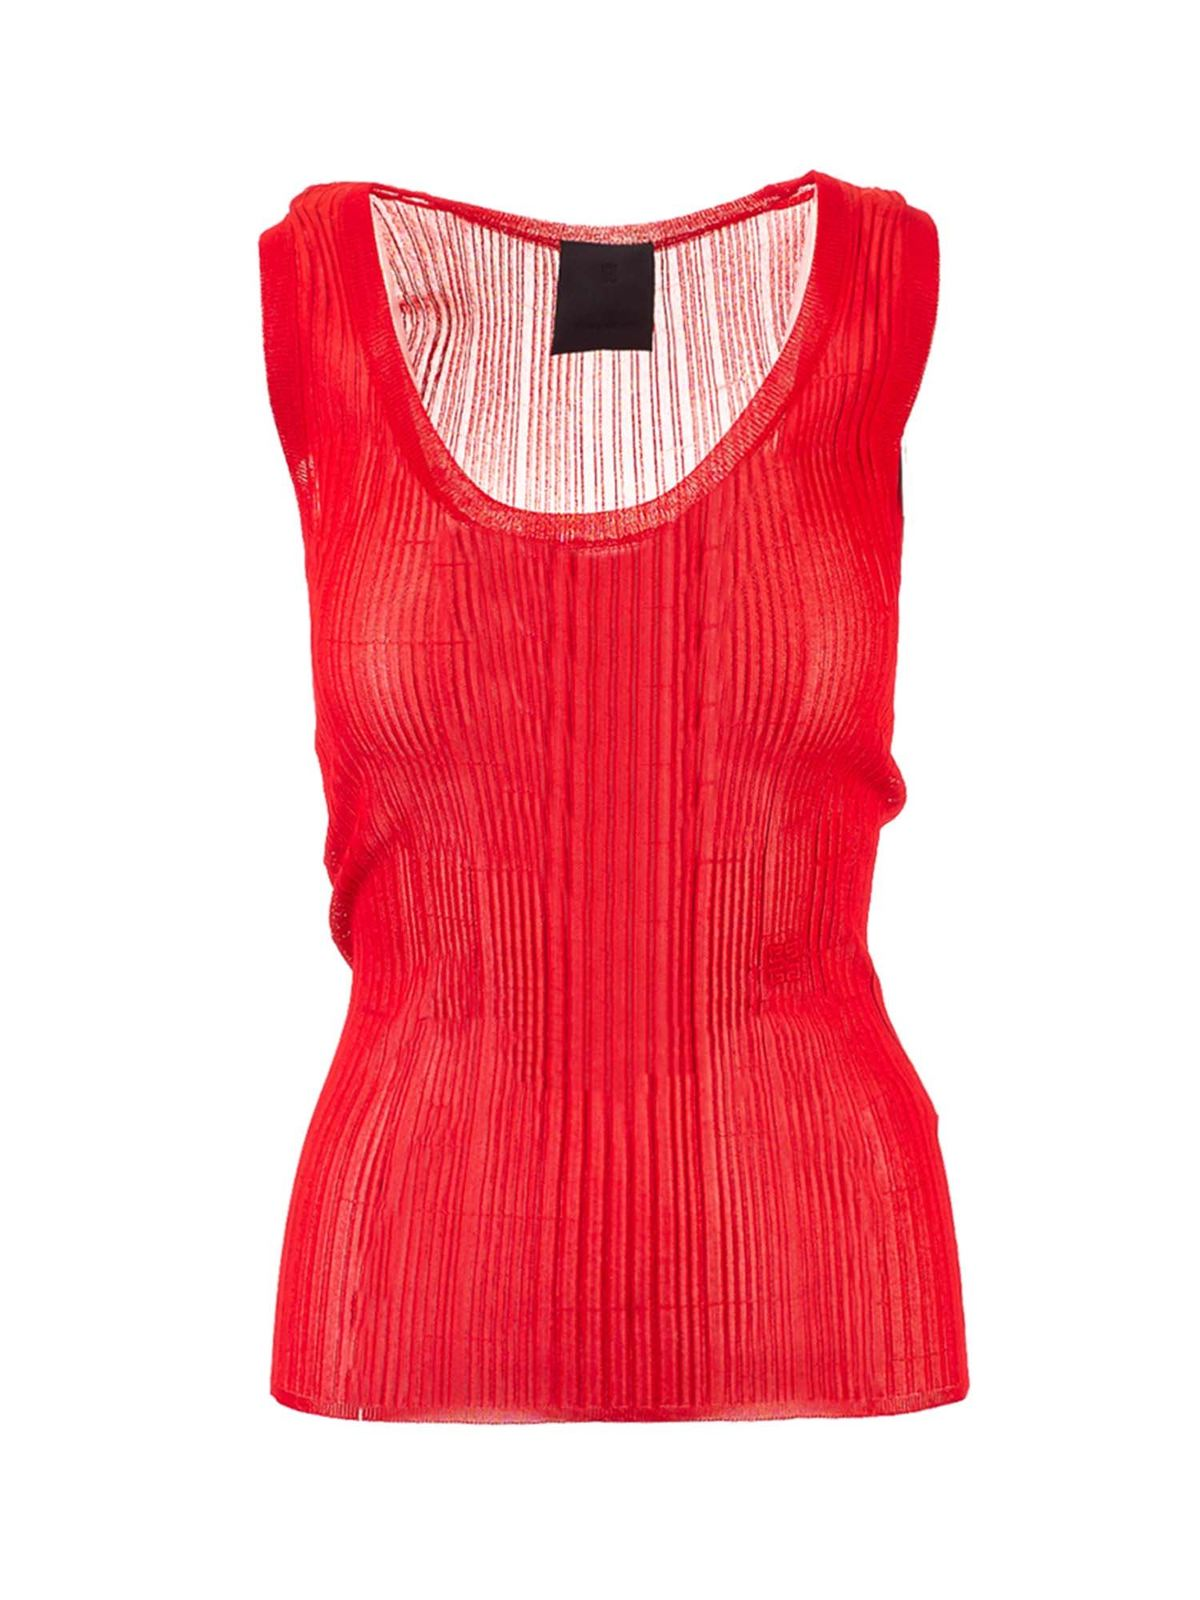 Givenchy Clothing TRANSPARENT SLIM FIT TANK TOP IN RED